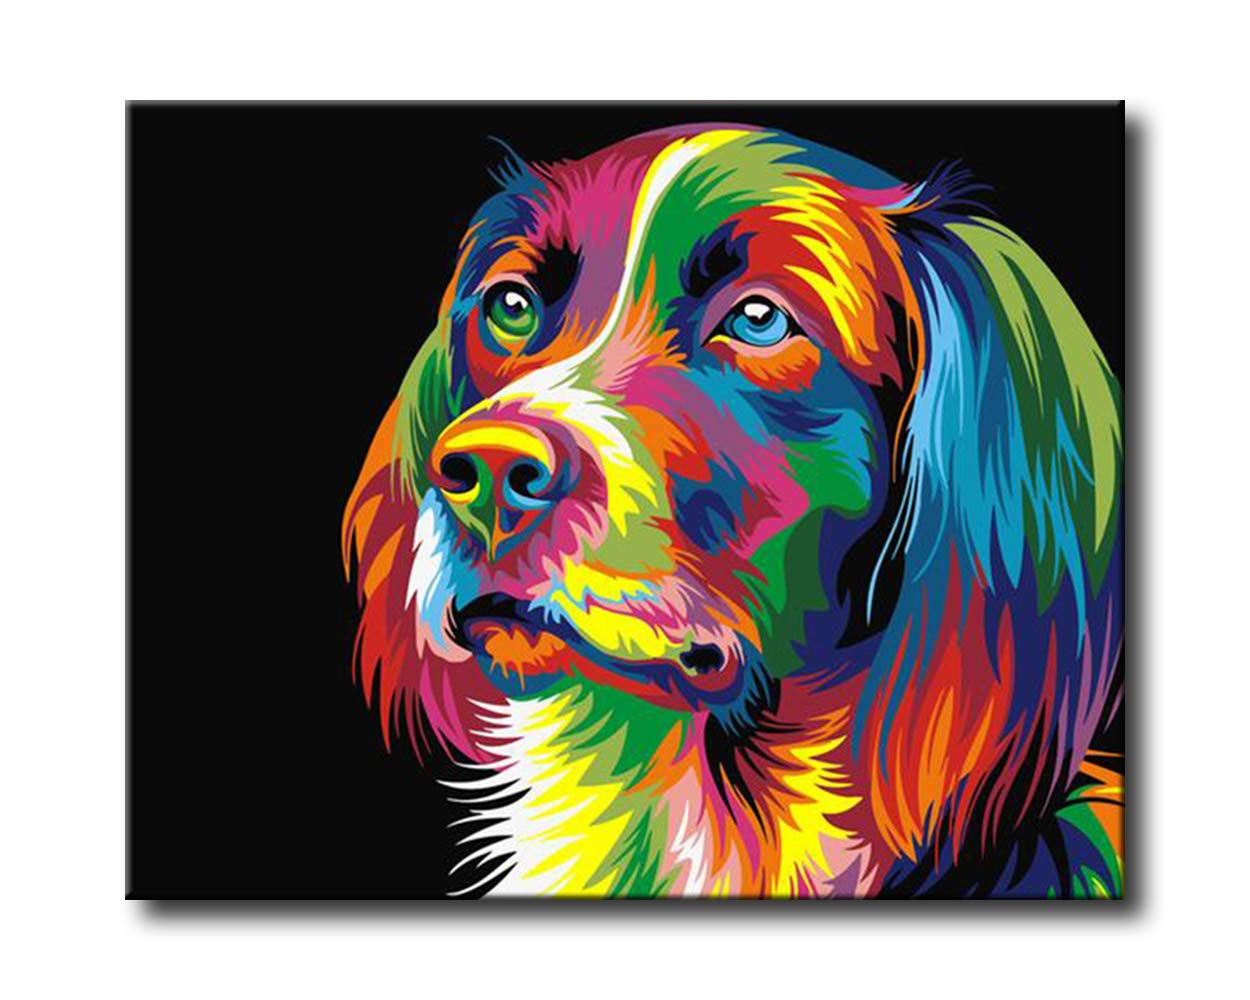 adulto Paint by number Kits Shukqueen DIY dipinto a olio Framed Canvas acrilico painting-colorful Dog 40,6/x 50,8/cm